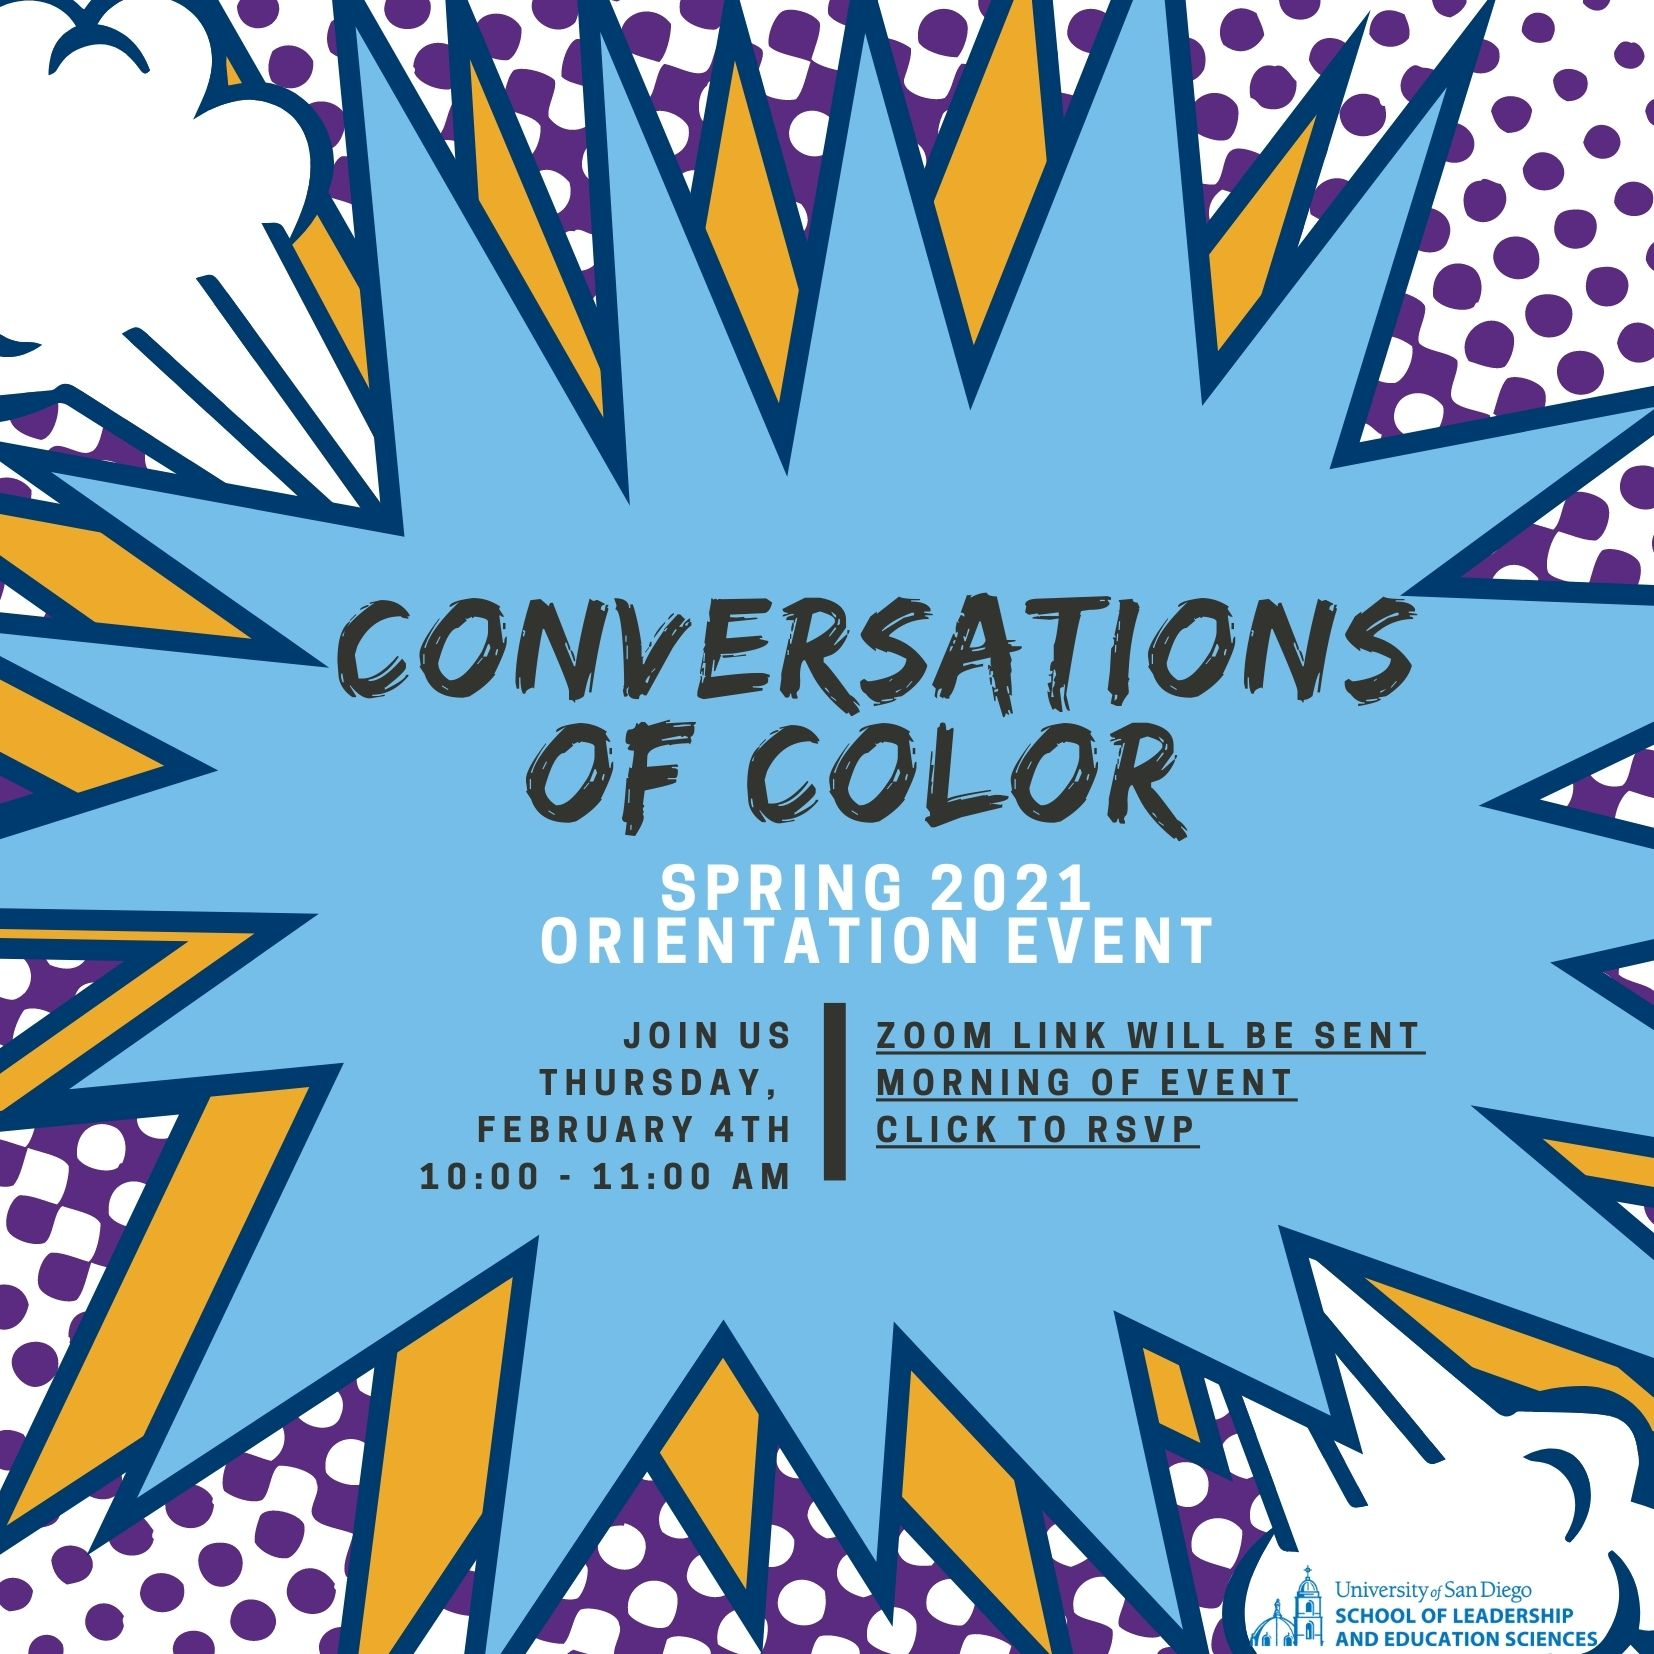 Conversations of Color Orientation Event Flyer 2/4/2021 10-11 AM